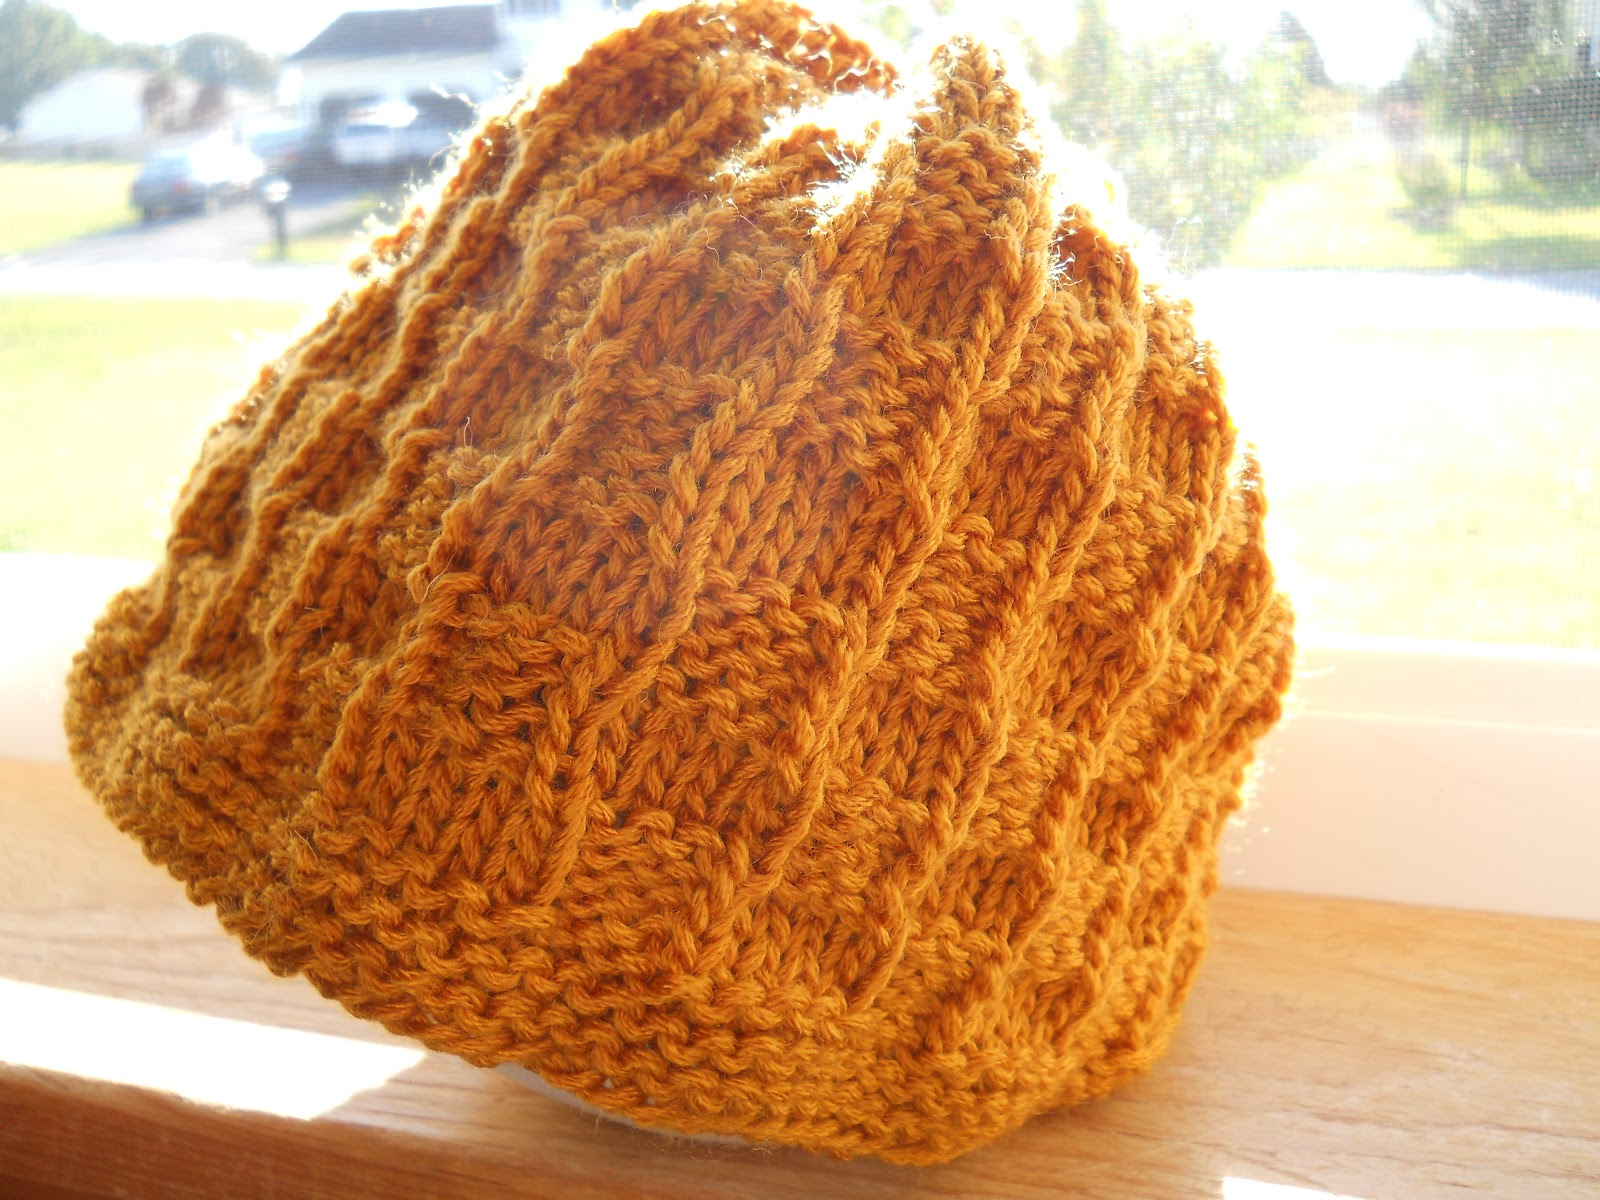 Knitting with Schnapps: Introducing The Checkered Embrace Chemo Cap ...